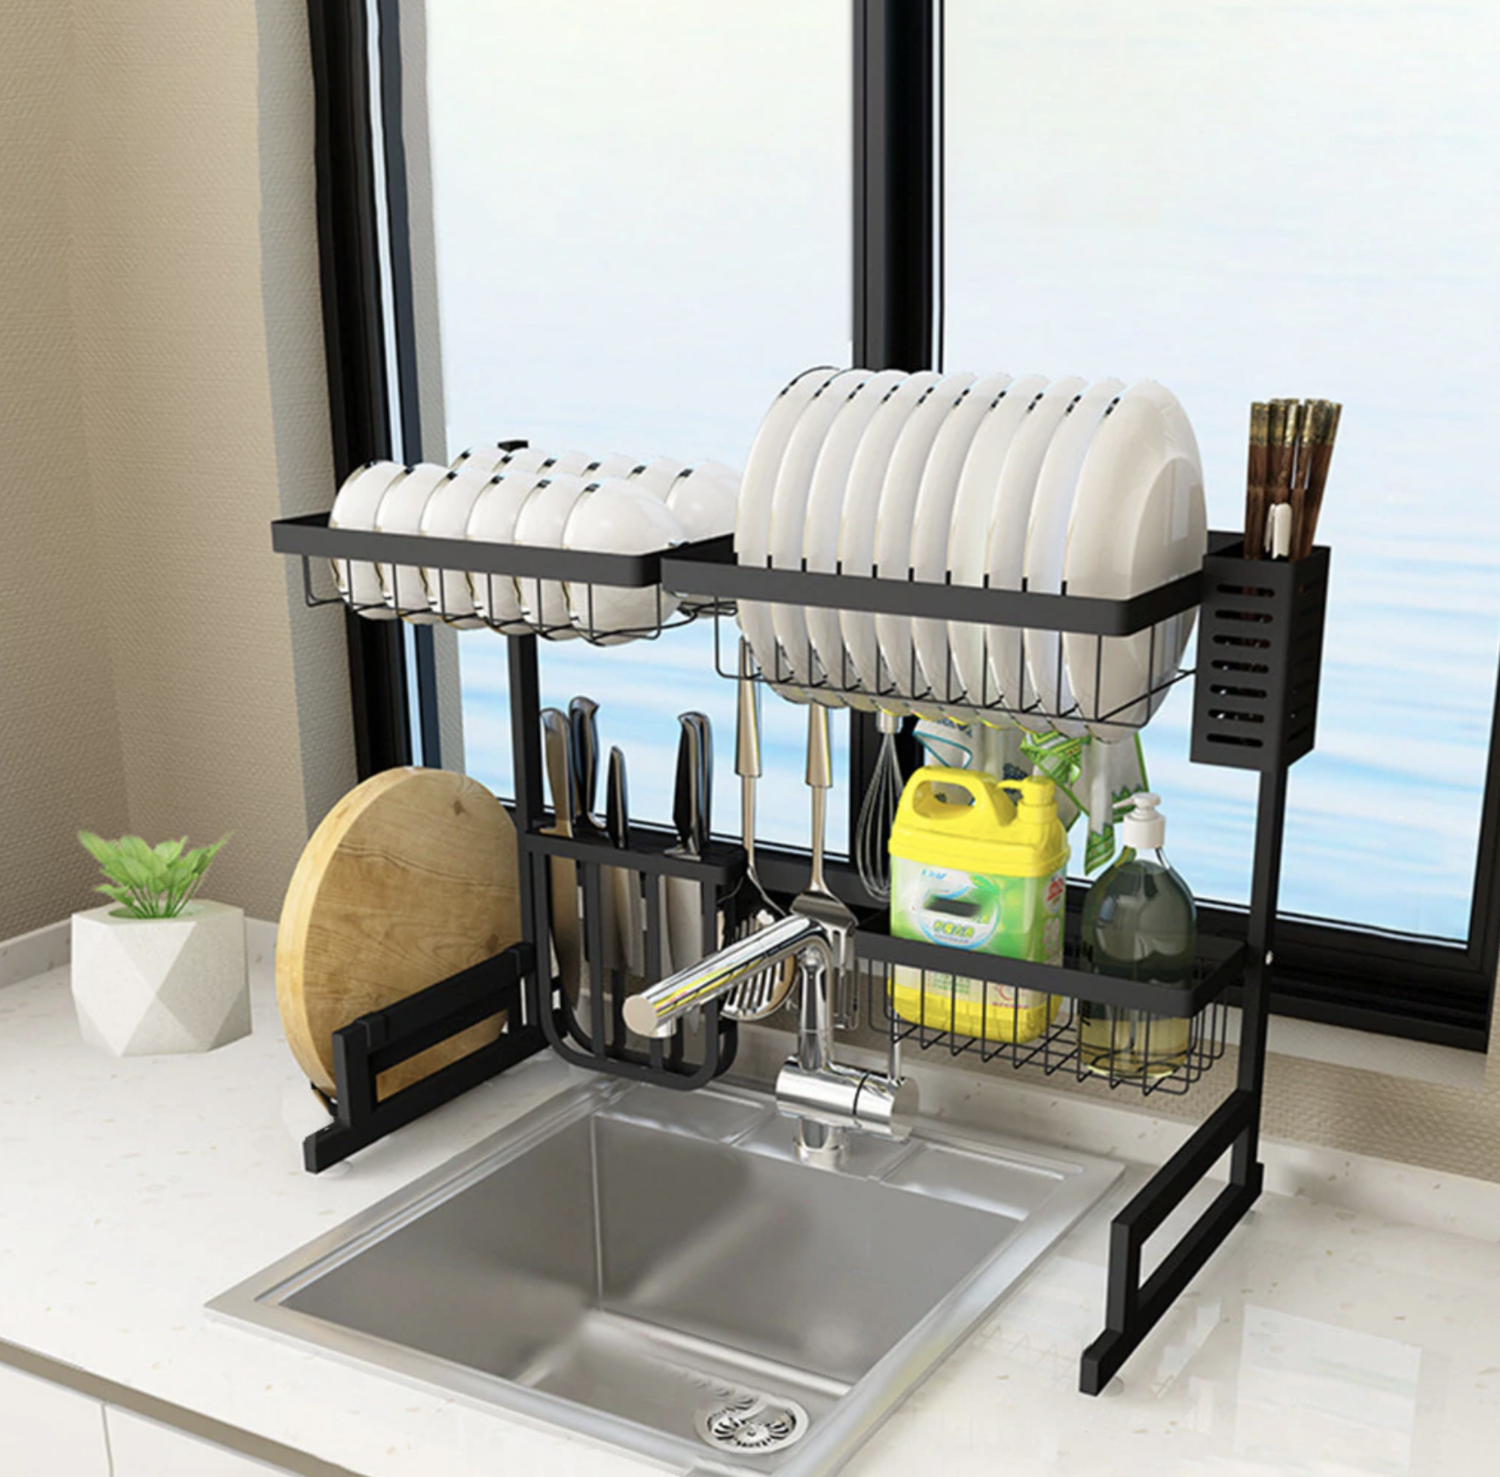 Adjustable Over The Sink Stainless Steel Drying Rack